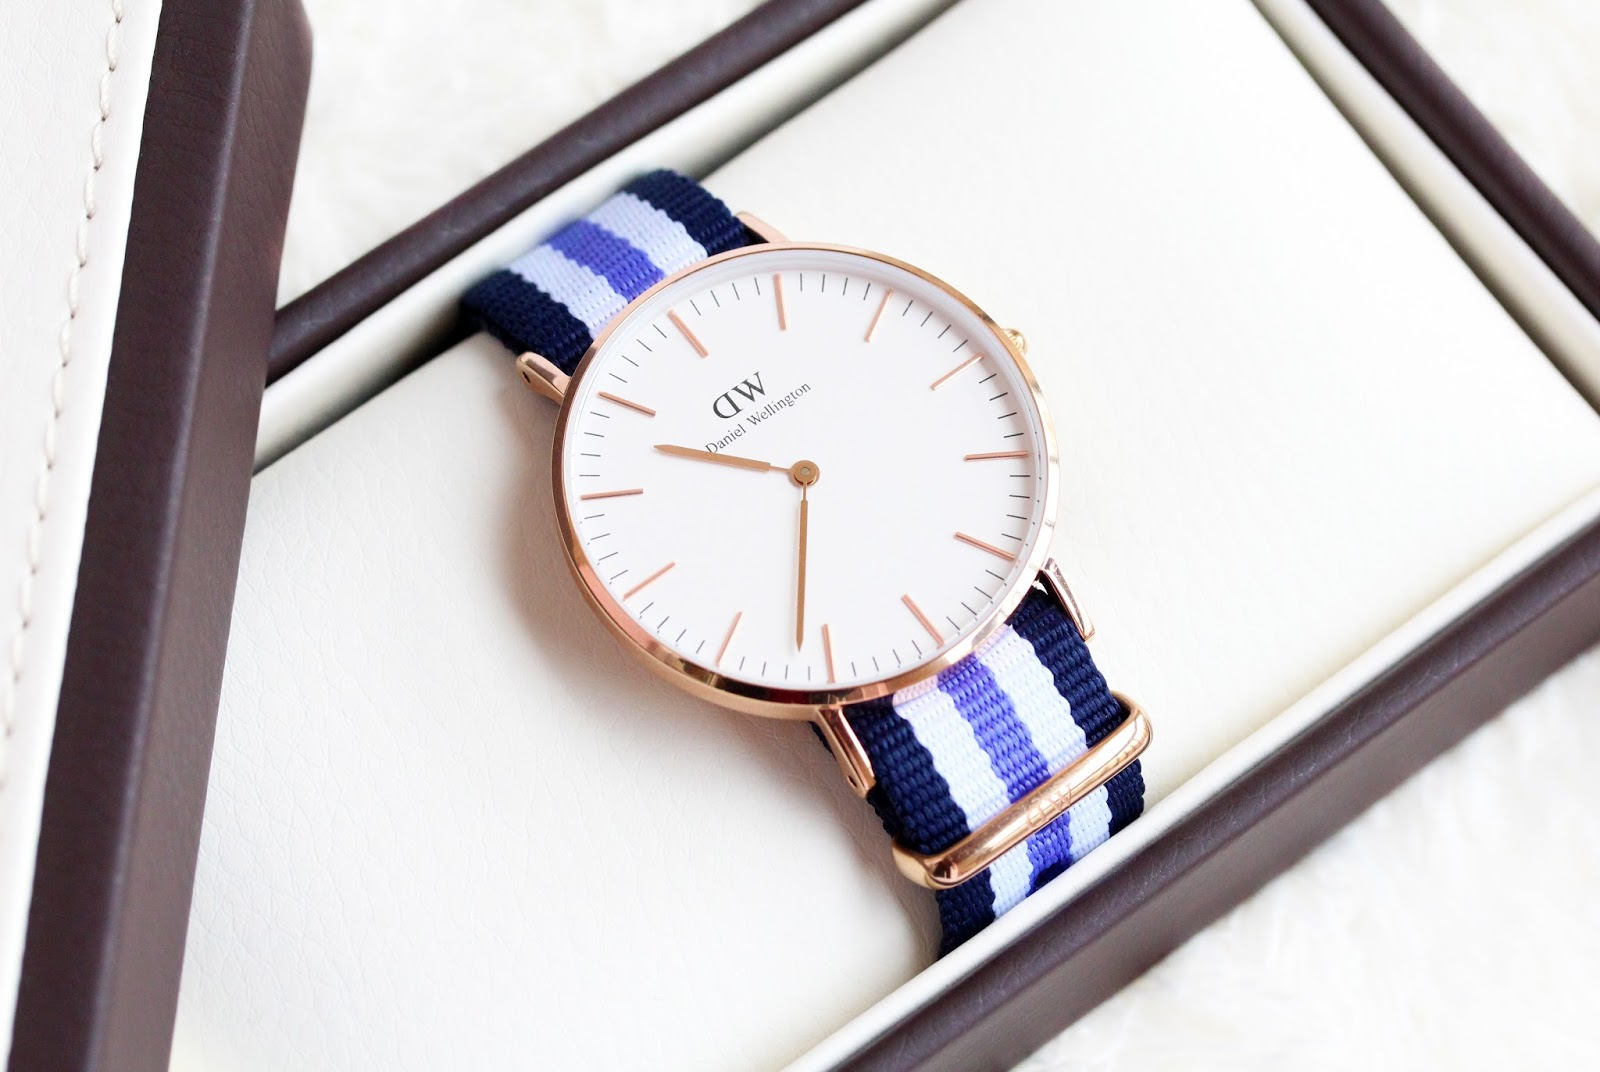 Image result for dw watch